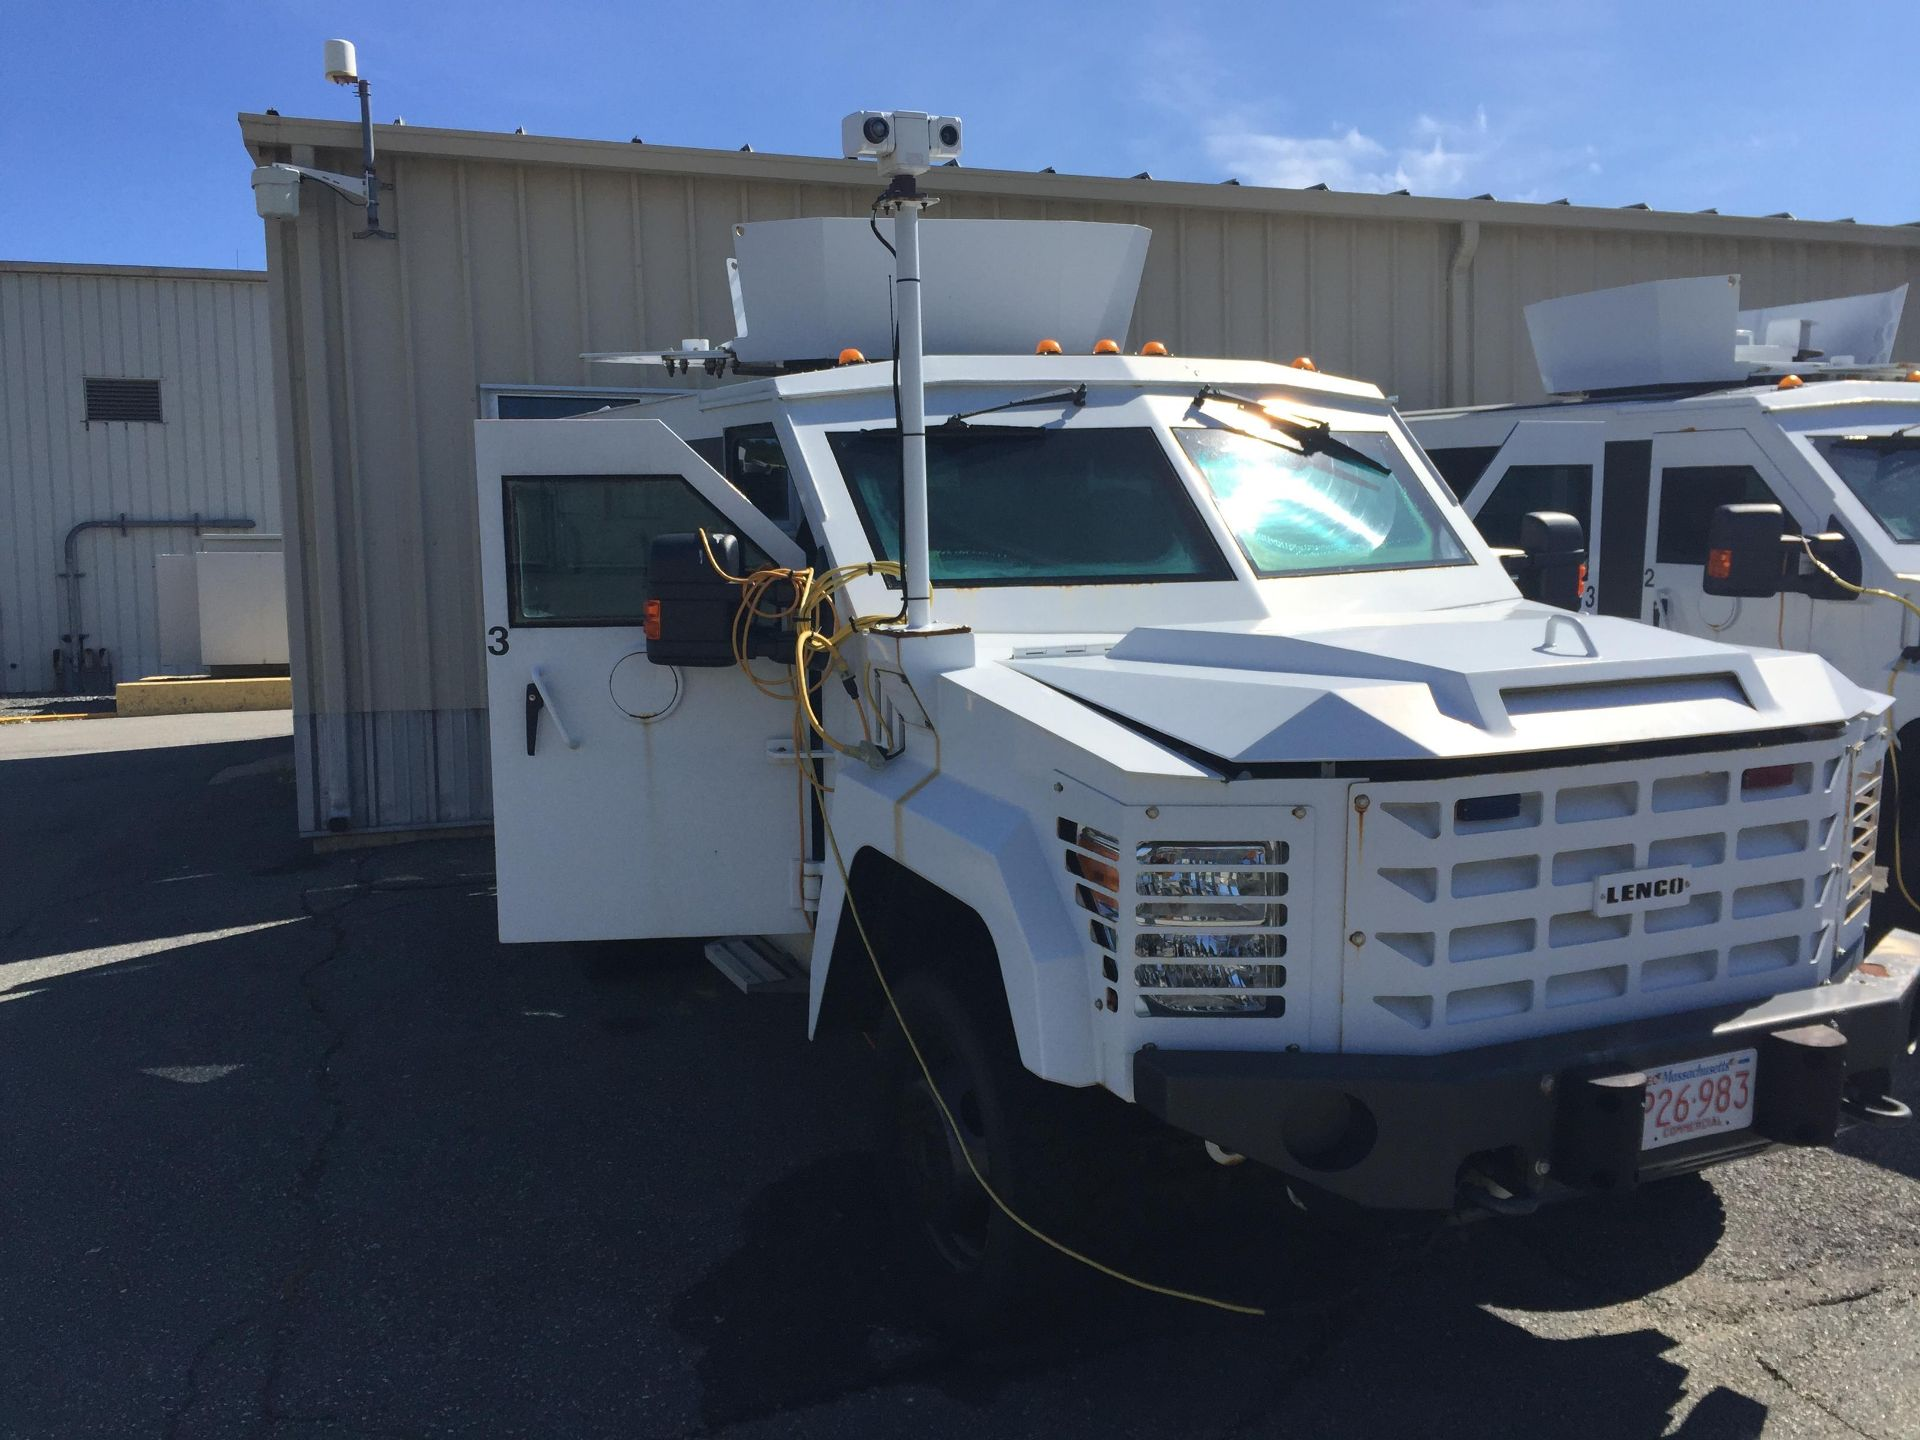 Lot 1A - 2011 LENCO G3 BEARCAT ARMORED VEHICLE: VIN: 1FDAF5HT9BEB66873, FORD DRWSUP F550, 6.7L DIESEL